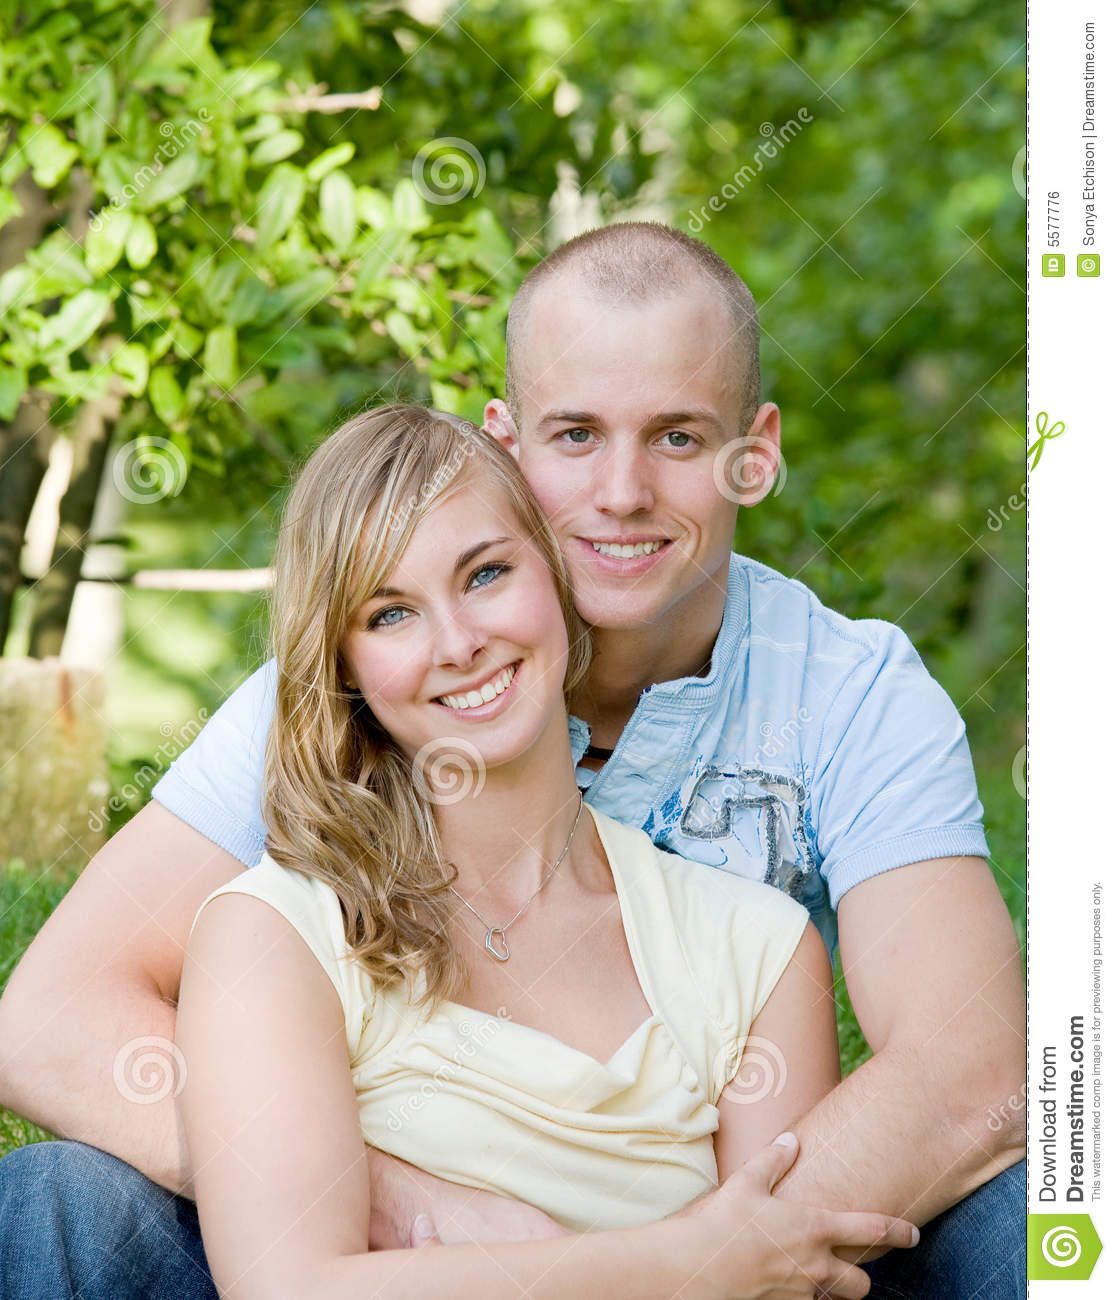 https://thumbs.dreamstime.com/z/happy-young-couple-5577776.jpg